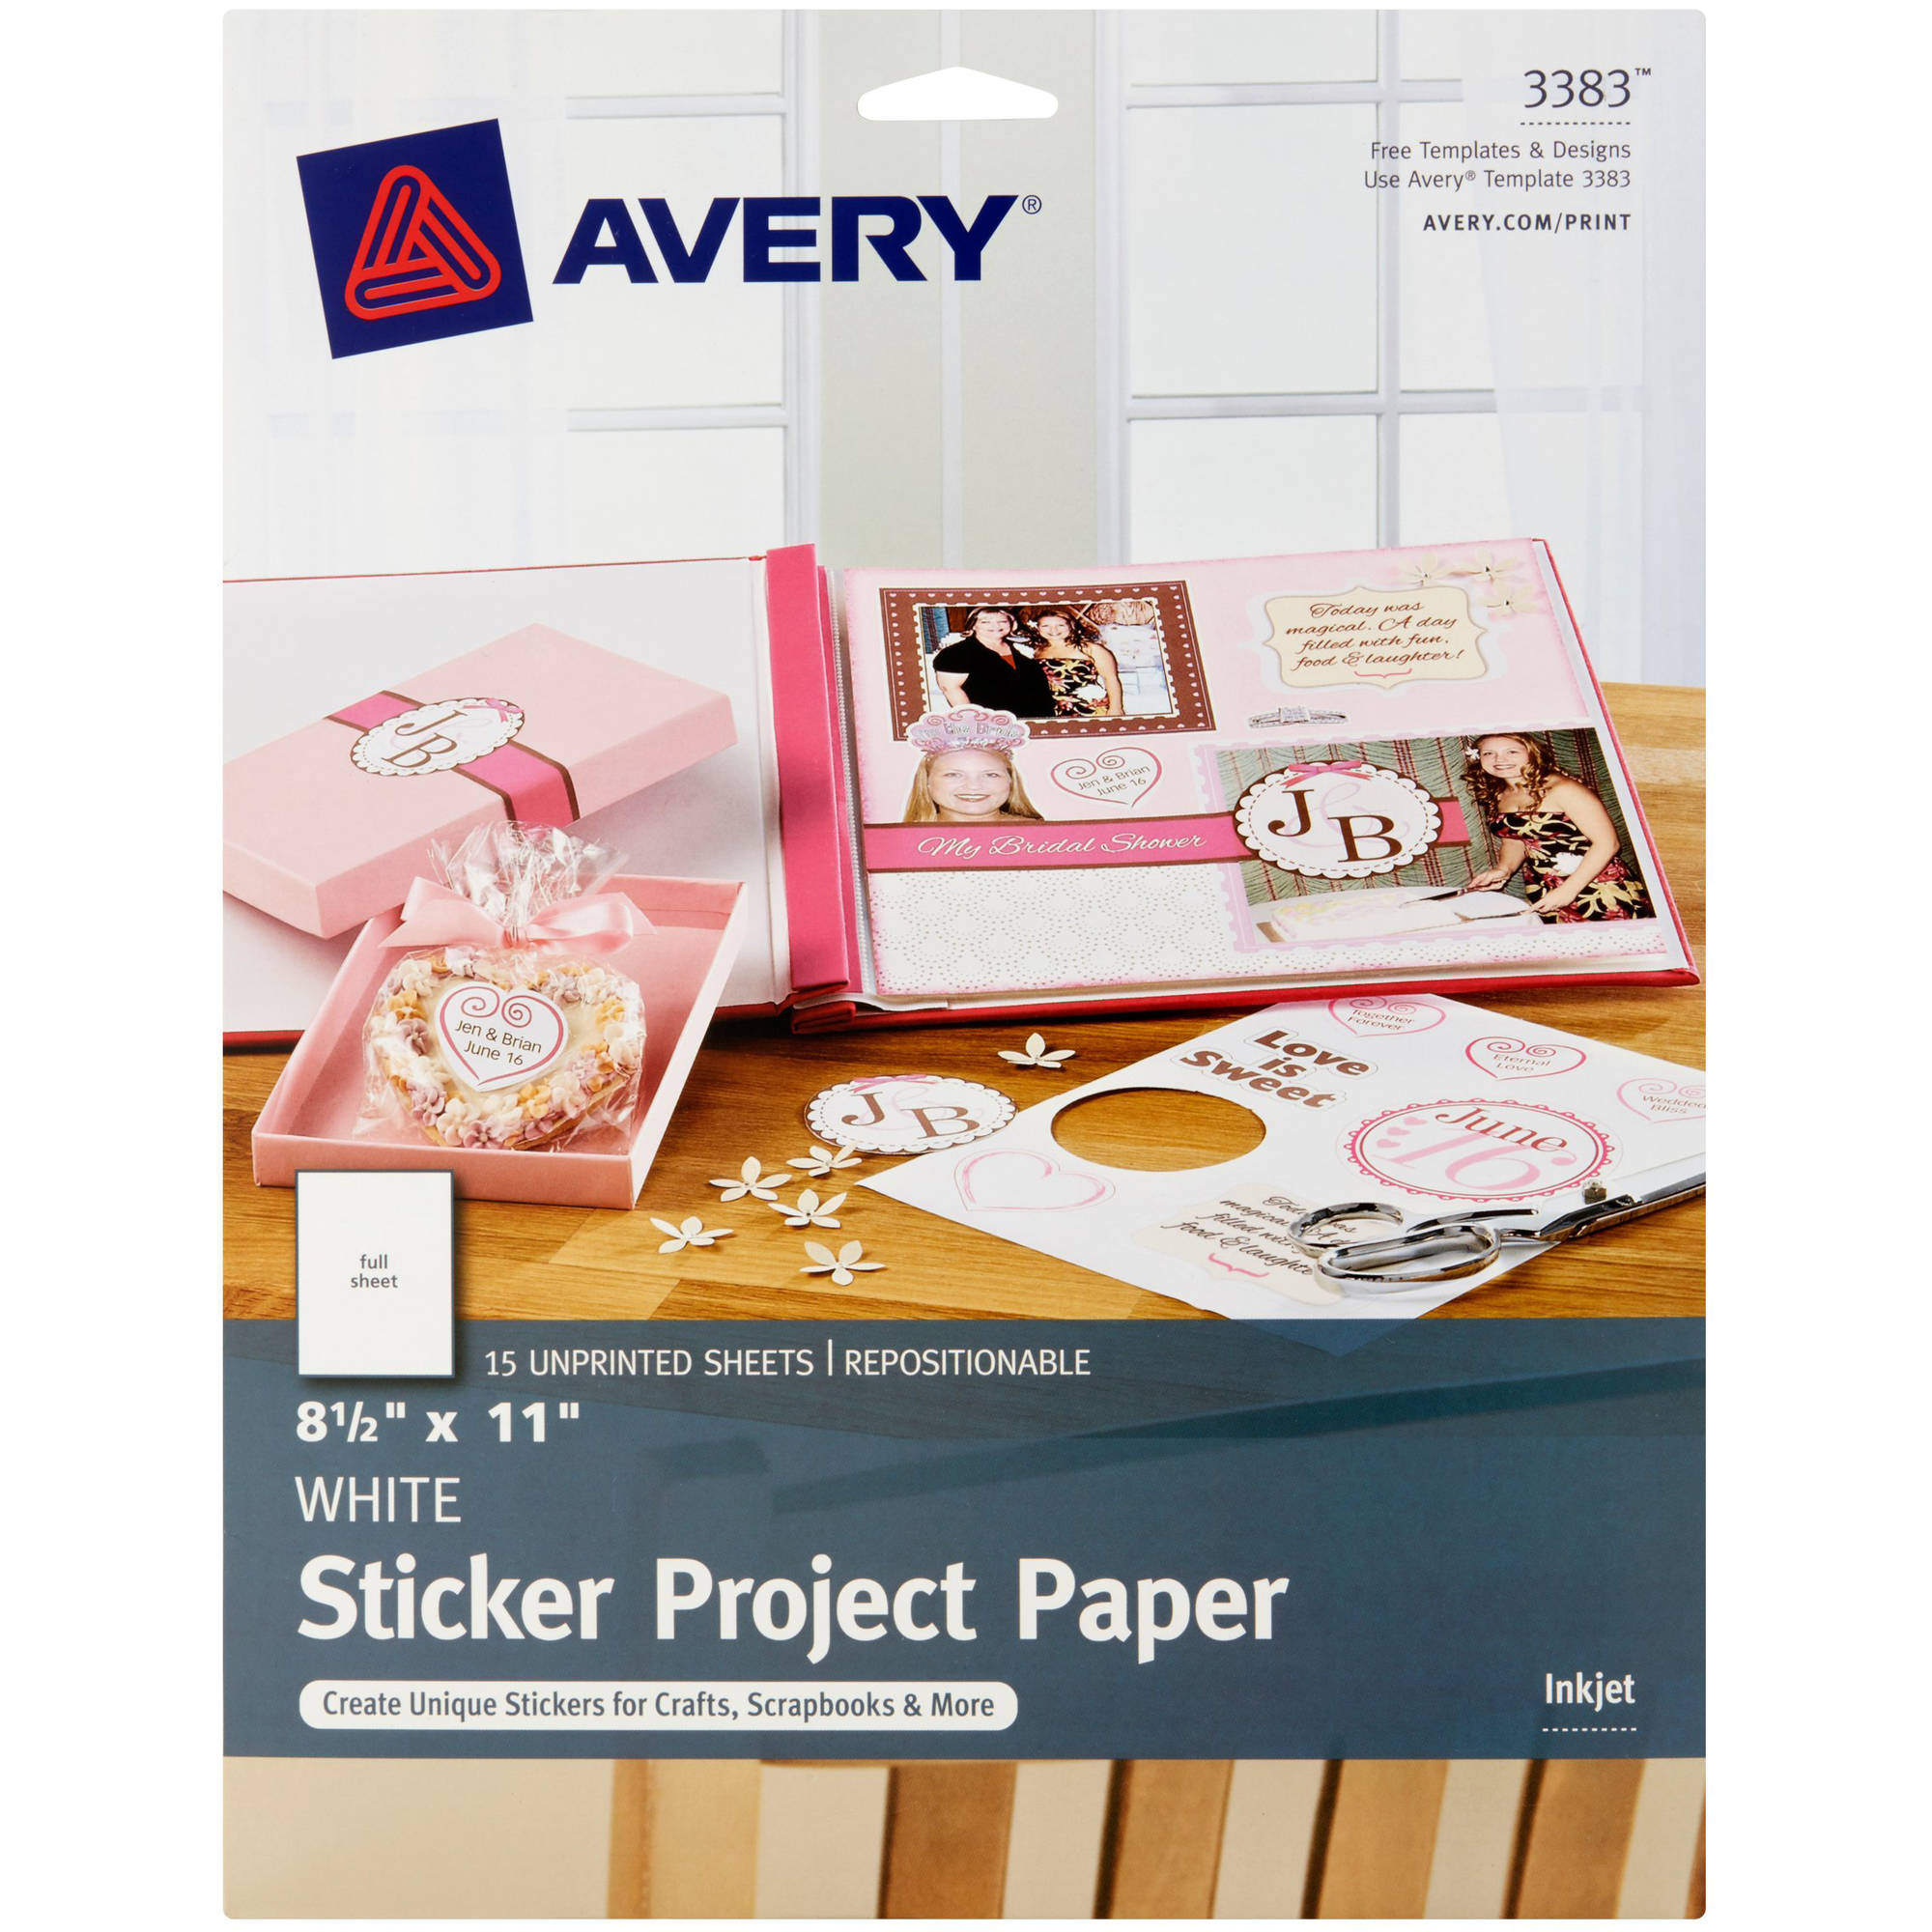 "Avery(R) Sticker Project Paper 3383, 8-1/2"" x 11"", White, Pack of 15"